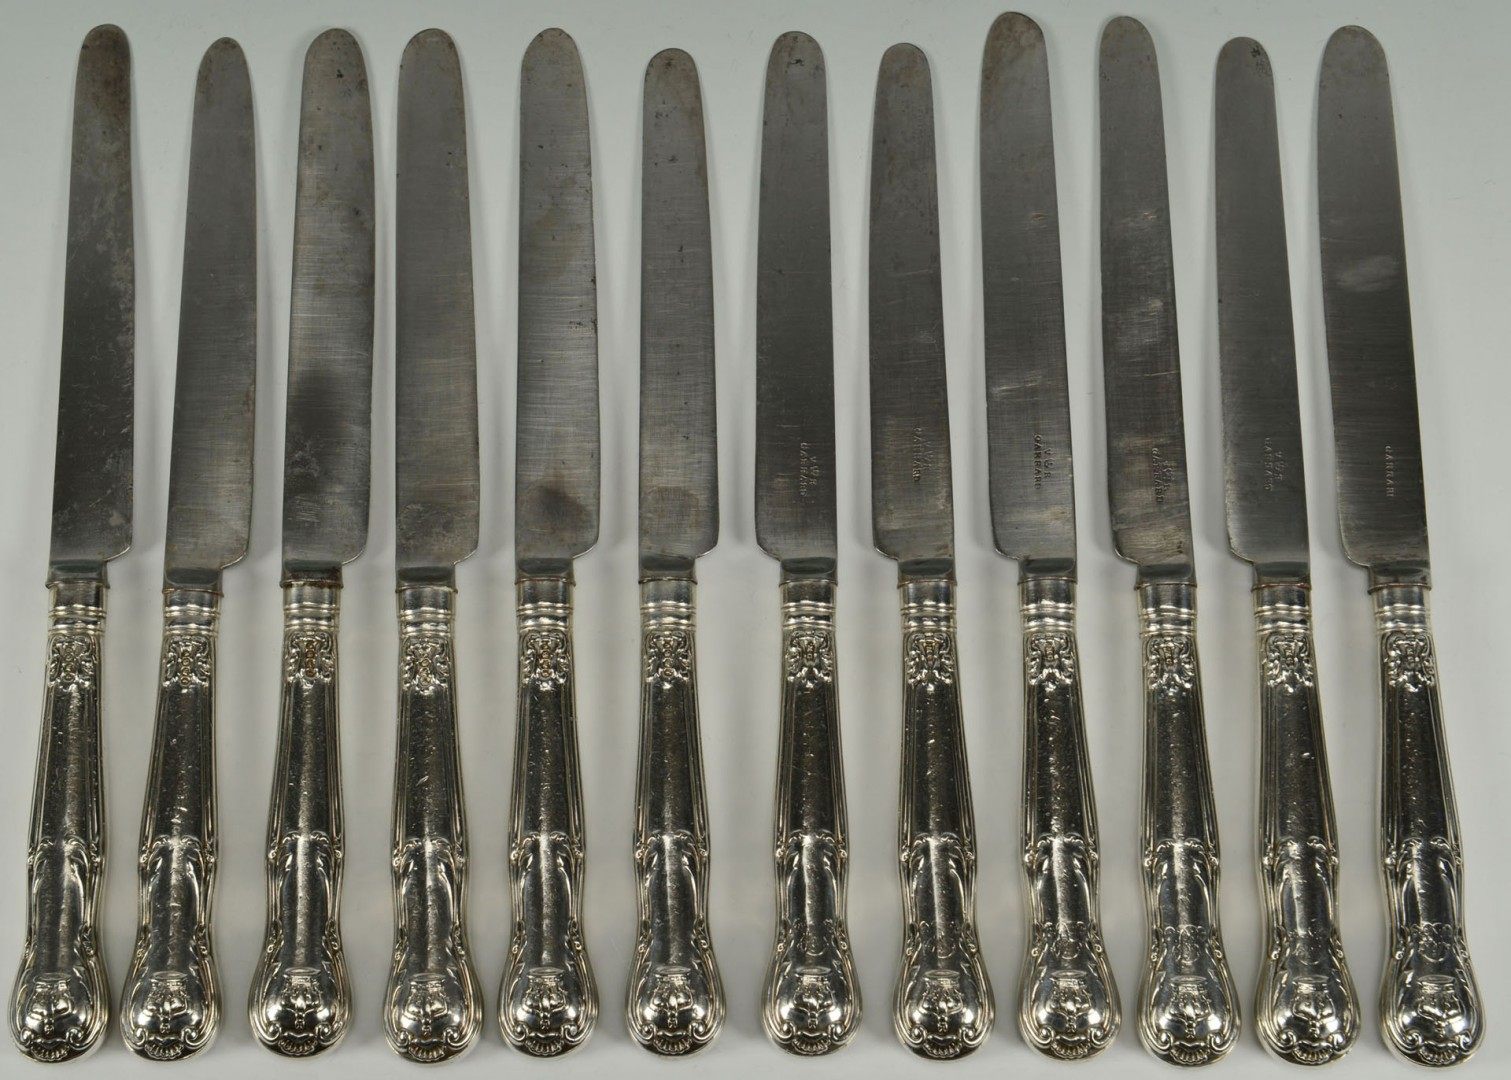 Lot 94: 12 sterling knives by Mary Chawner for Queen Adela